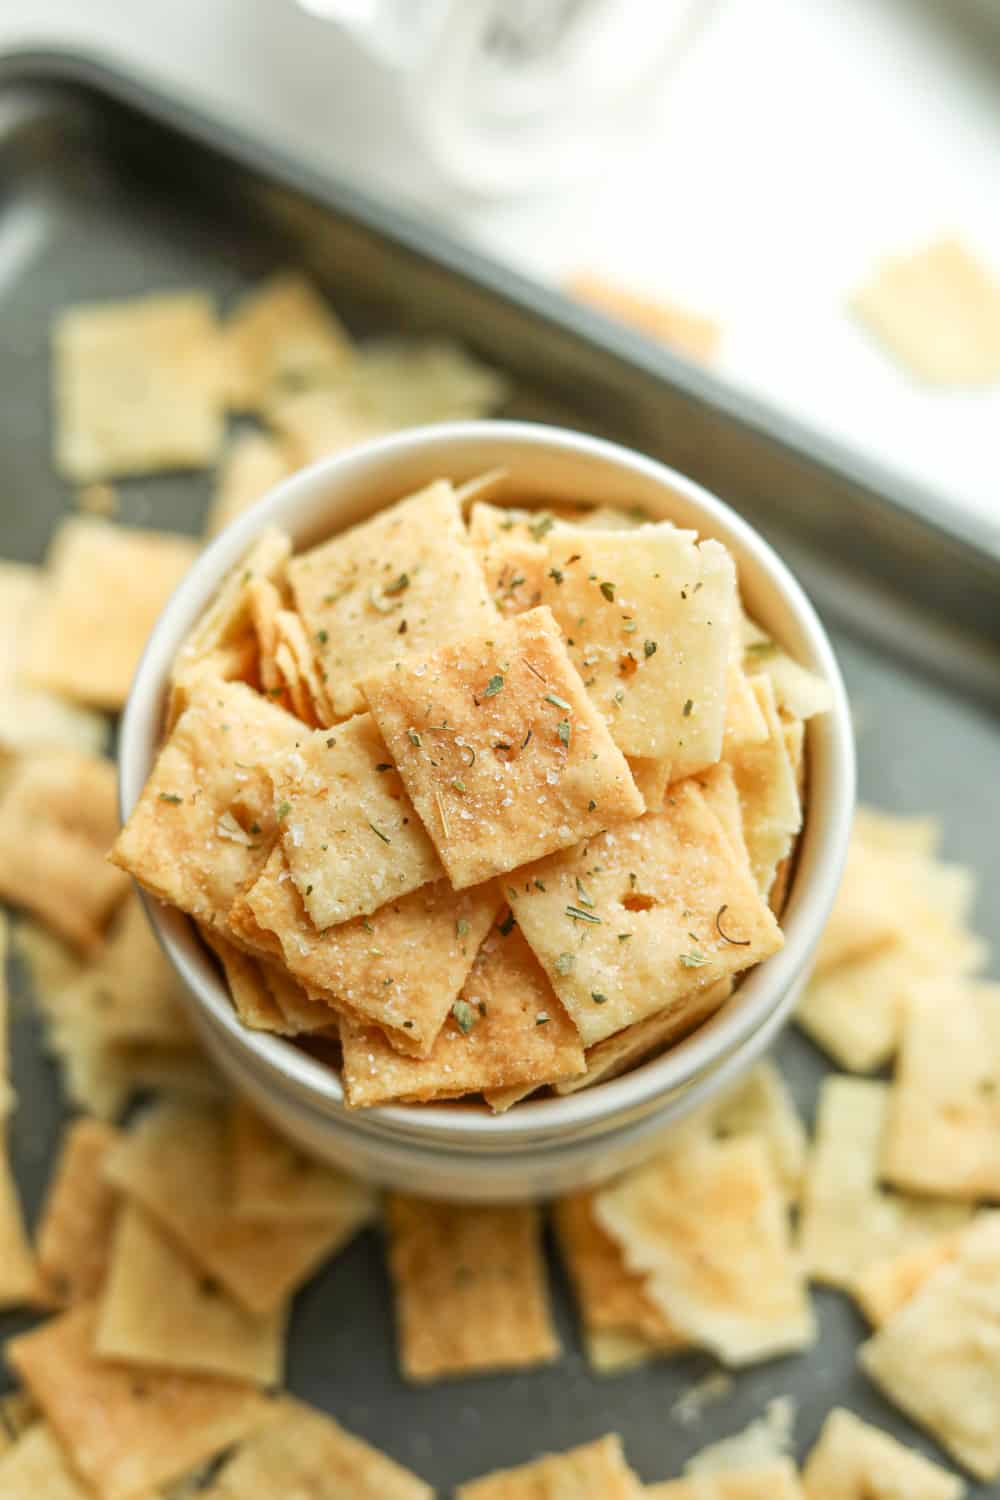 Low carb keto crackers in a bowl.